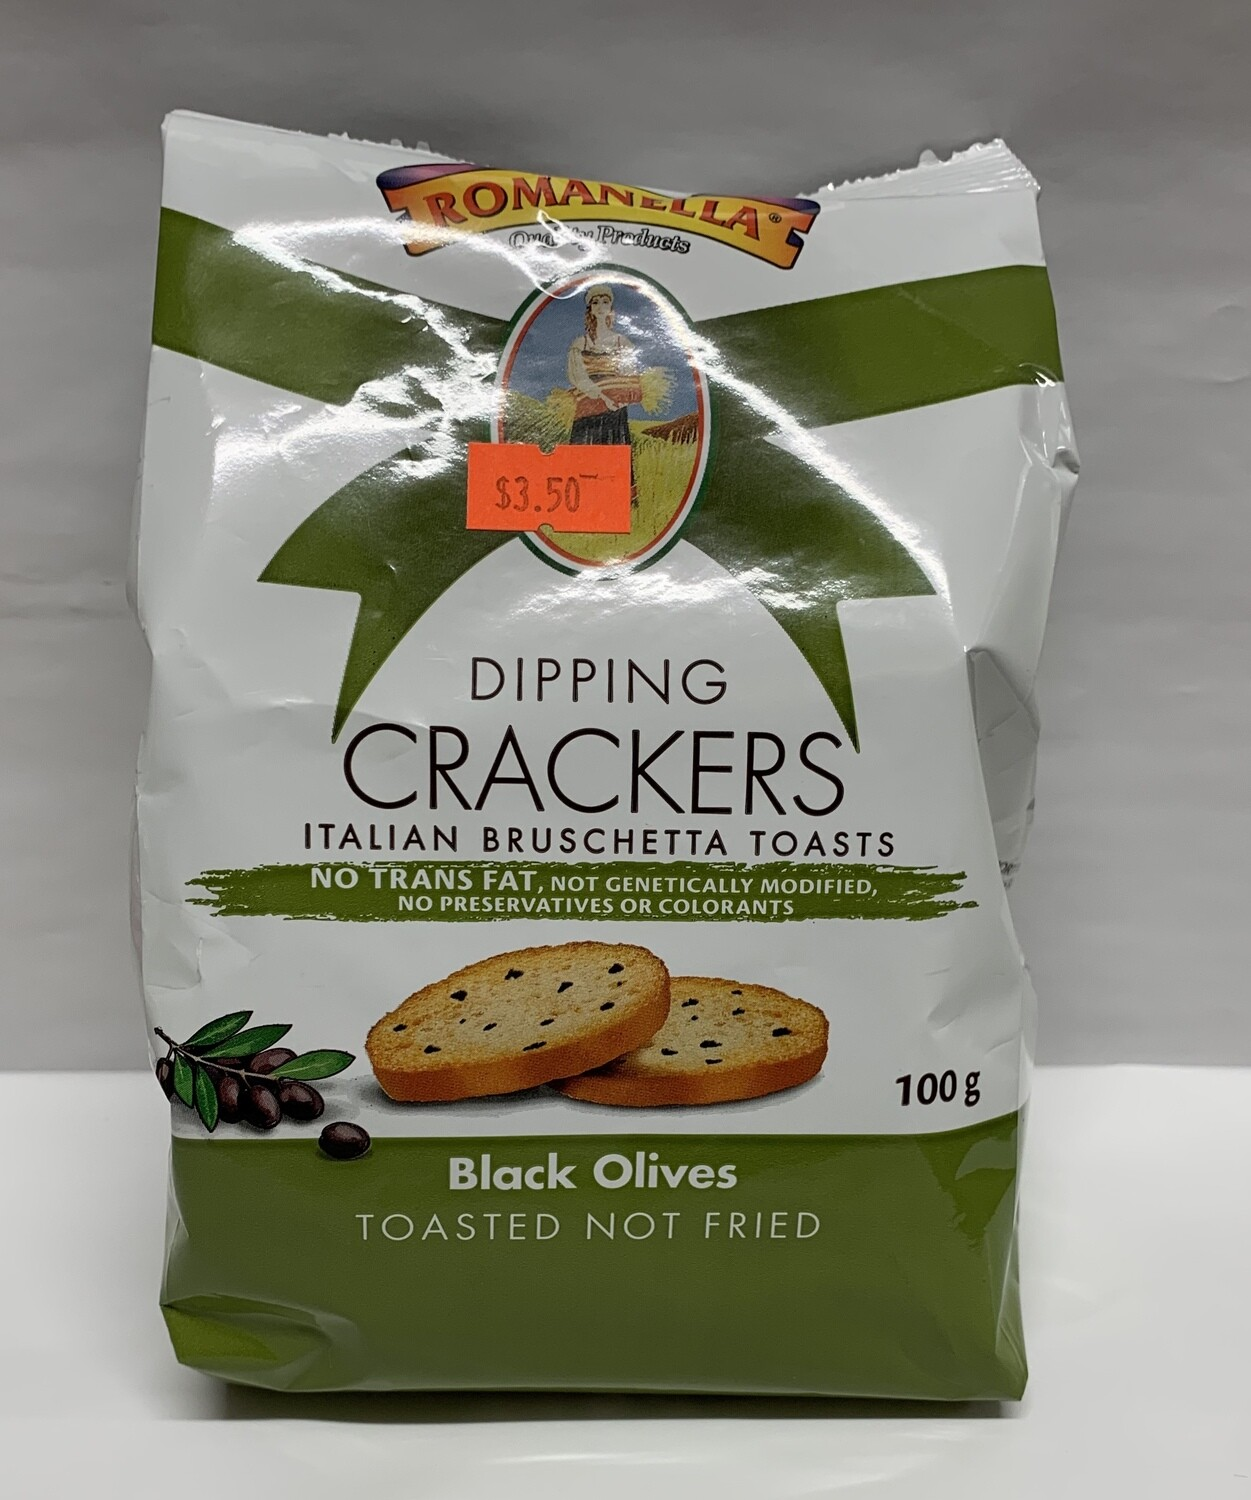 Black Olives Dipping Crackers (100g)